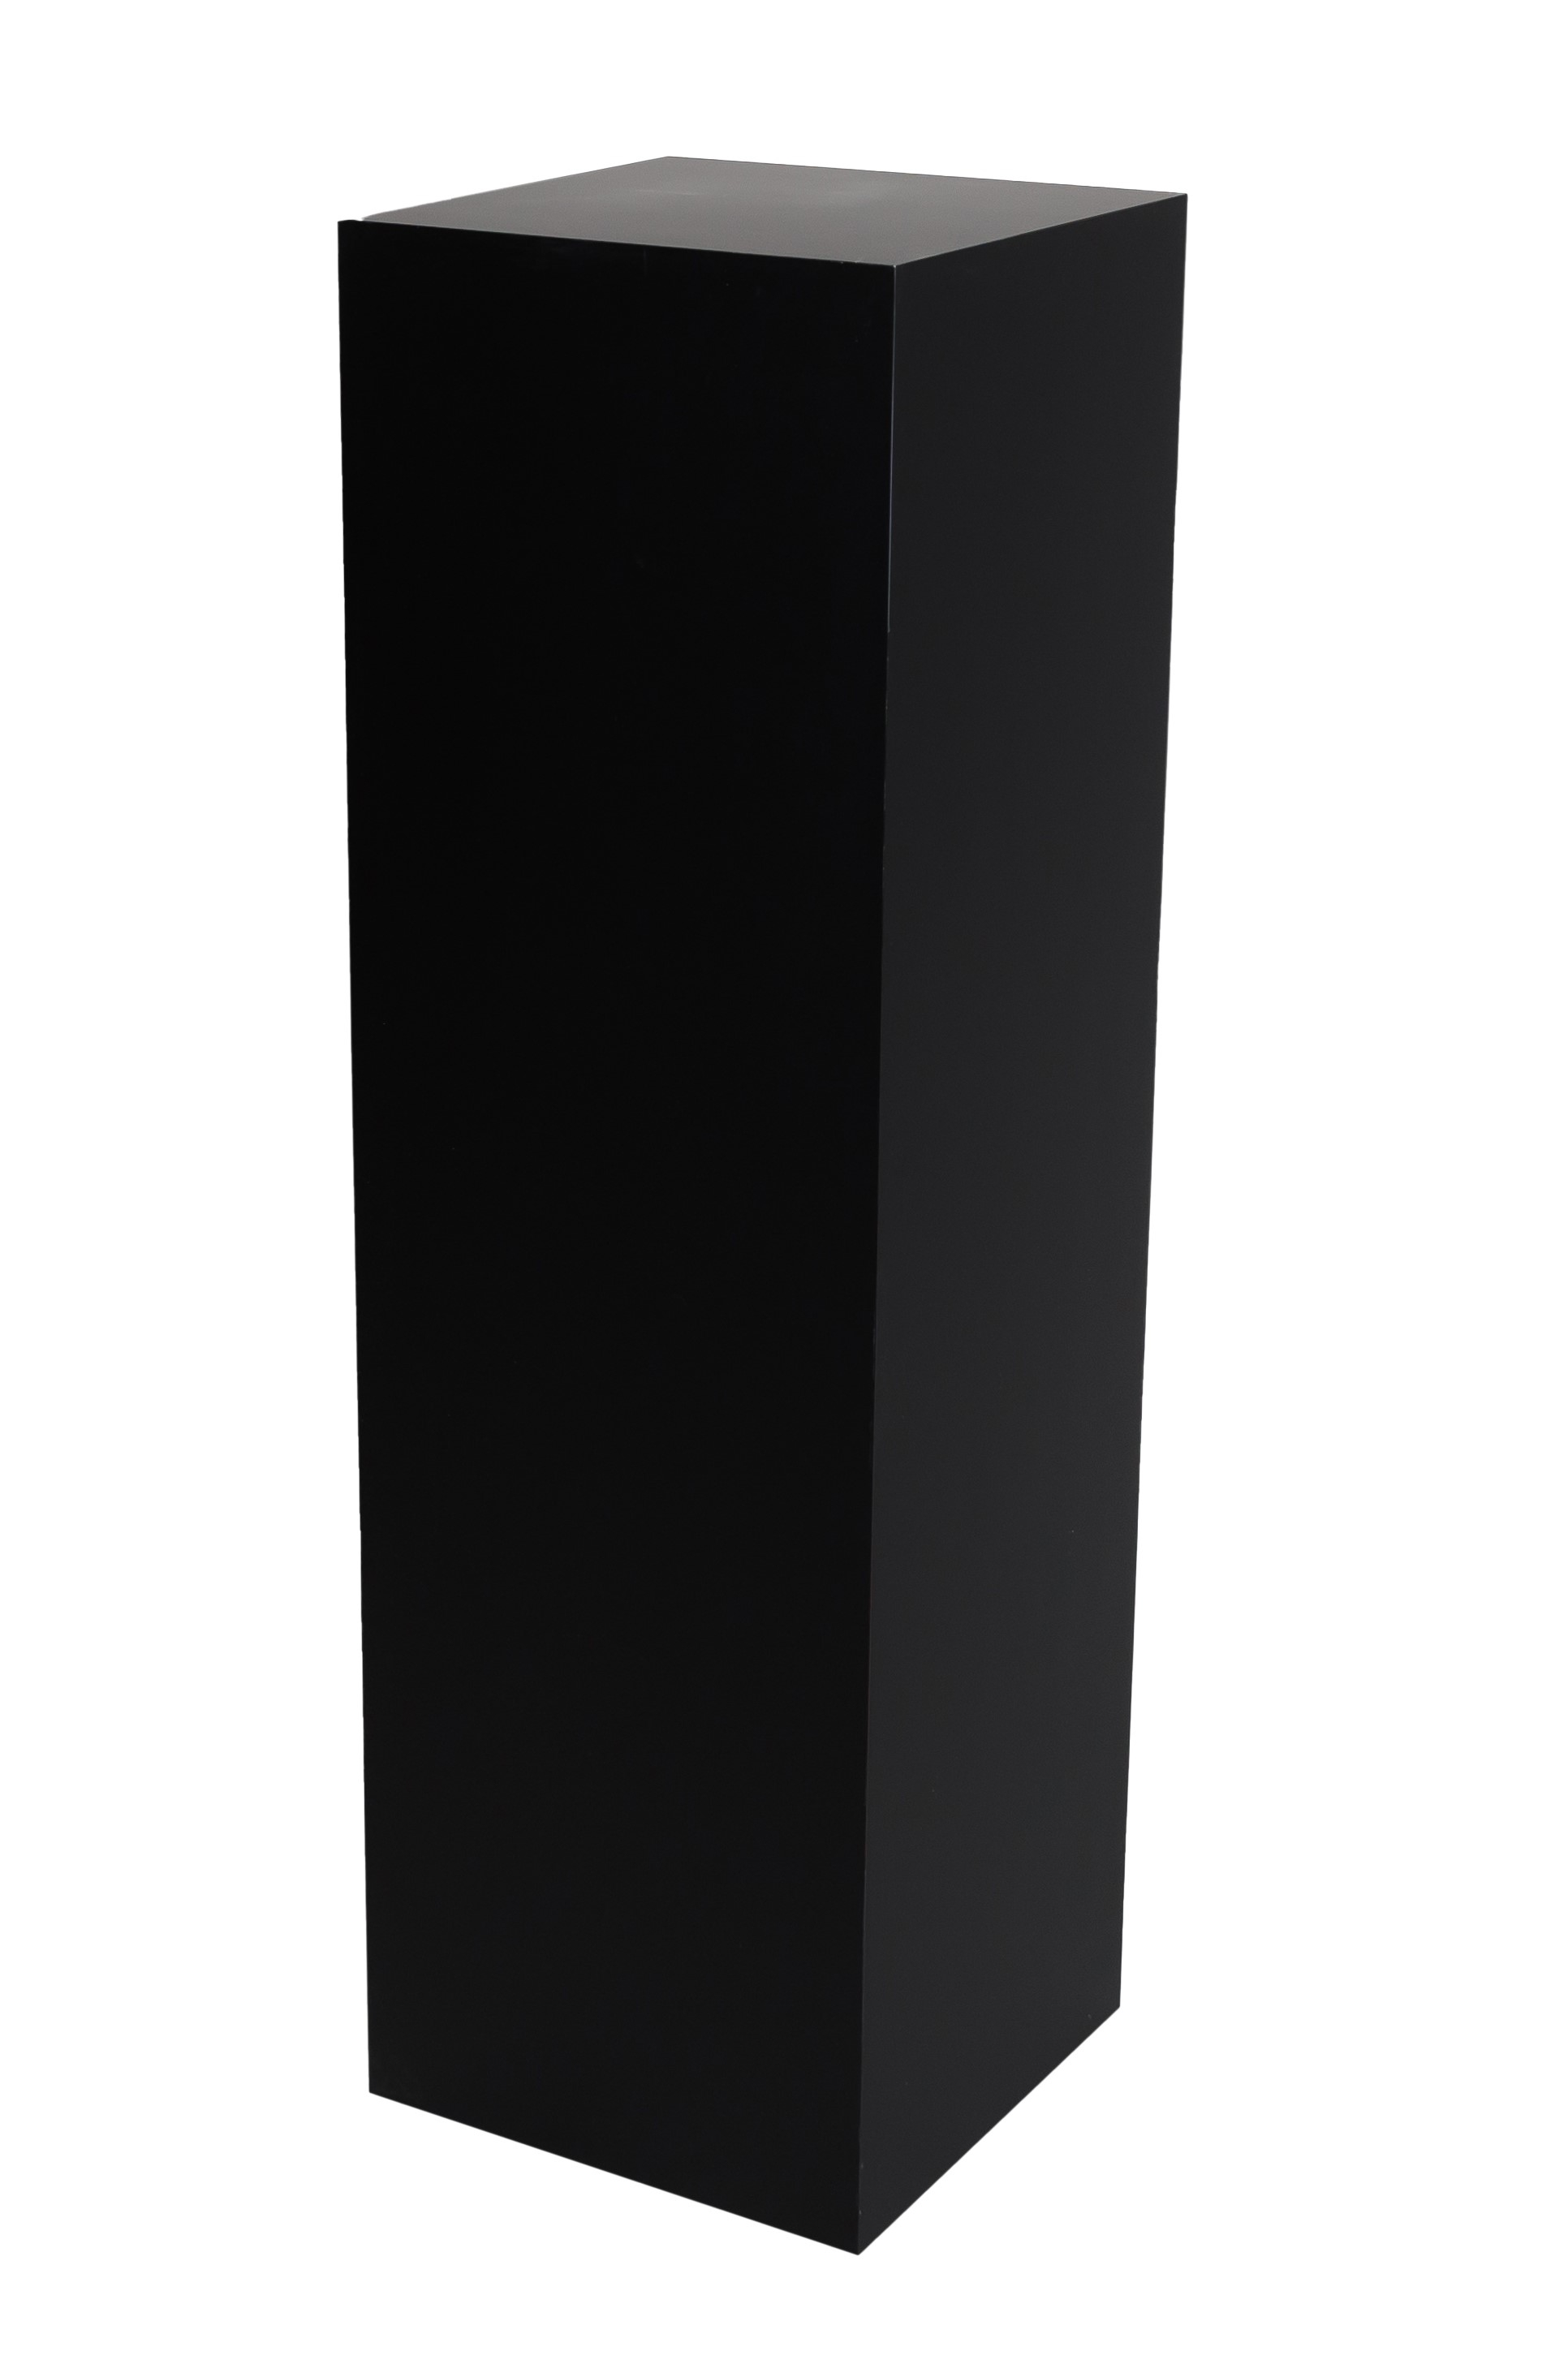 Solits plinth black matt